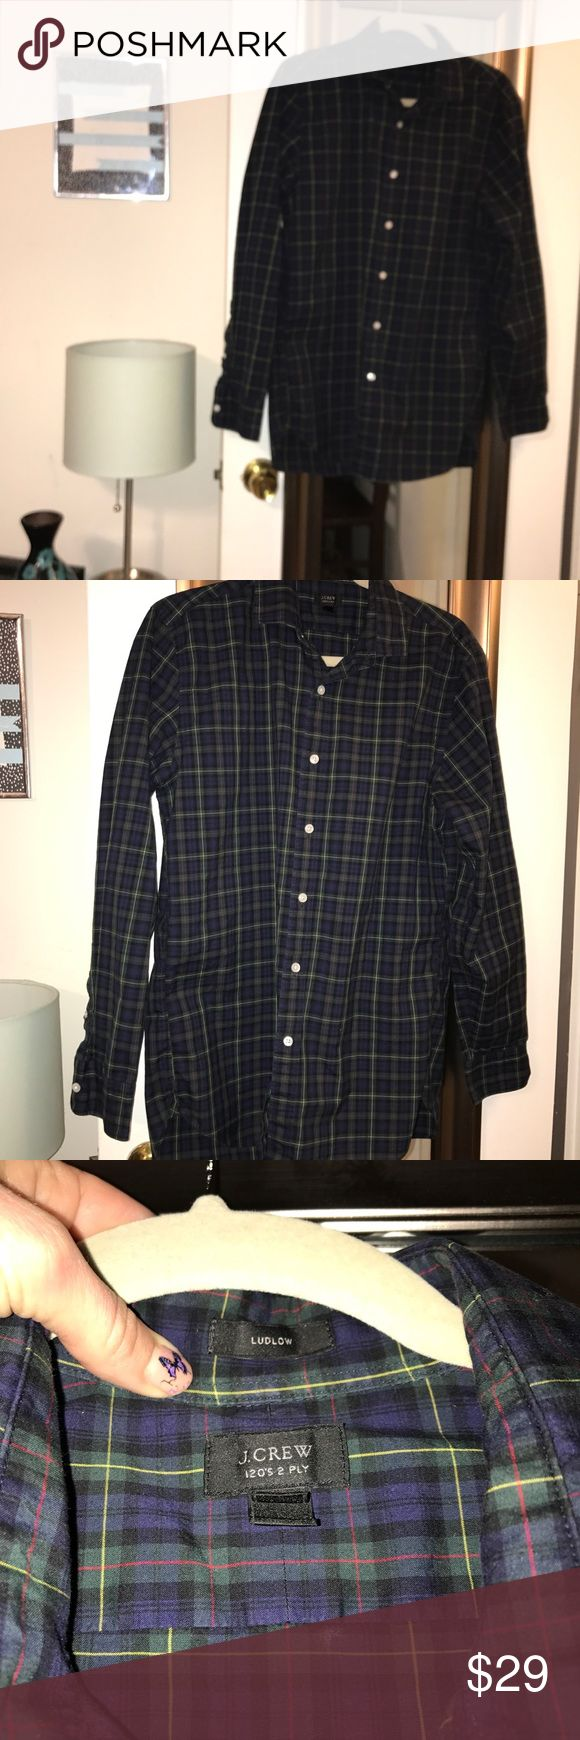 J. Crew Blue Plaid Button down shirt size M slim J. Crew Blue Plaid Button Ludlow 120's 2 ply down shirt size M slim. Preowned Men's J Crew Slim size medium blue and green plaid Oxford. My boyfriend decided I bought him too many plaid J Crew shirts and wants to purge. No stains or flaws. 100% cotton. Great shape. Bundle with my other men's shirts for additional discount J. Crew Shirts Casual Button Down Shirts